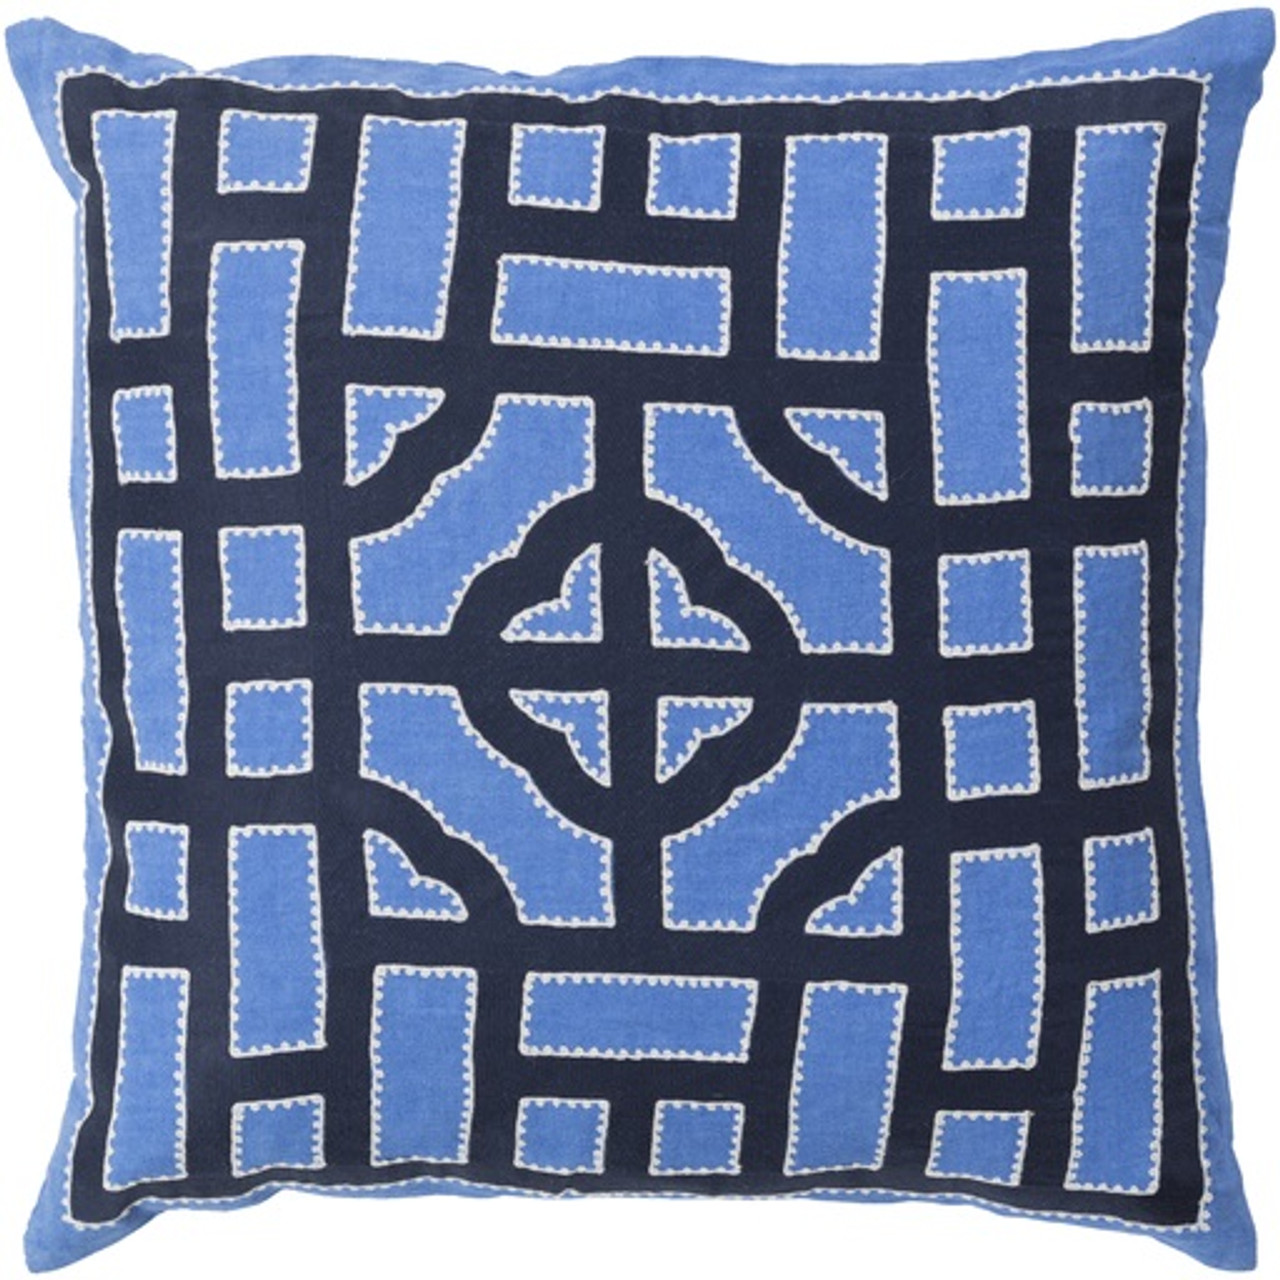 20 White Navy Royal Blue Chinese Gate Decorative Linen Throw Pillow Poly Filled Christmas Central